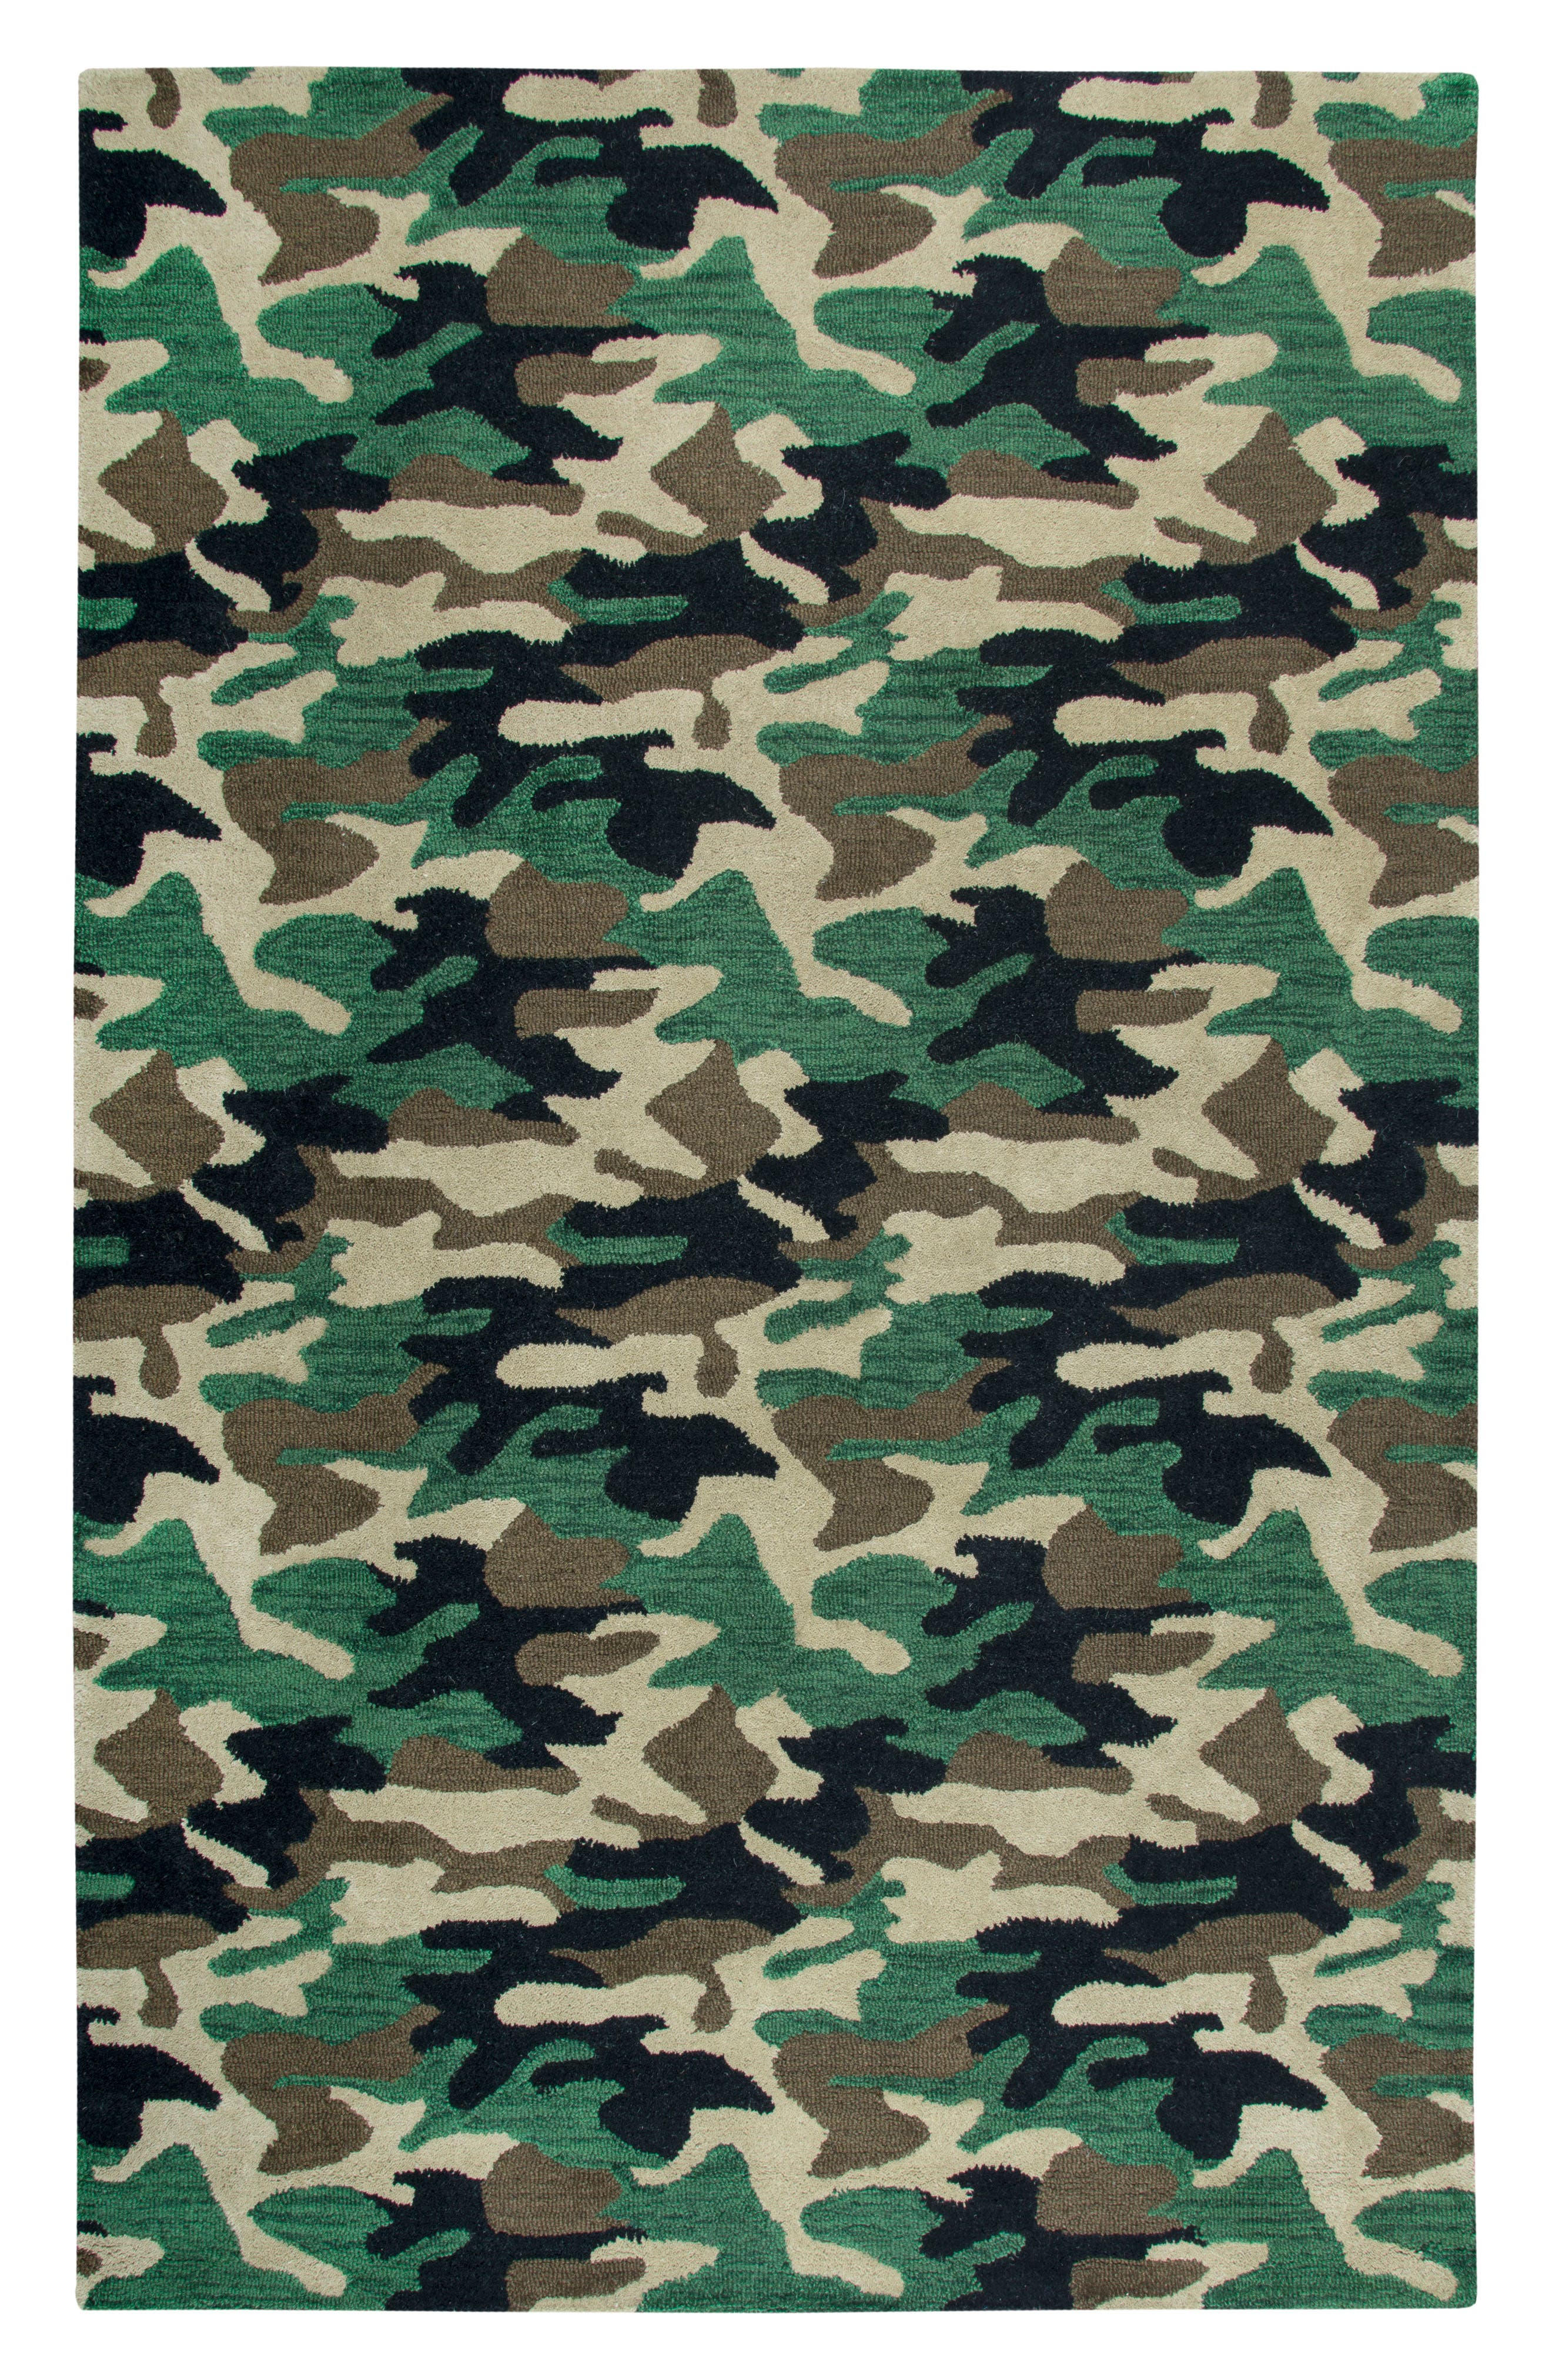 Play Day Camouflage Rug,                         Main,                         color, Green